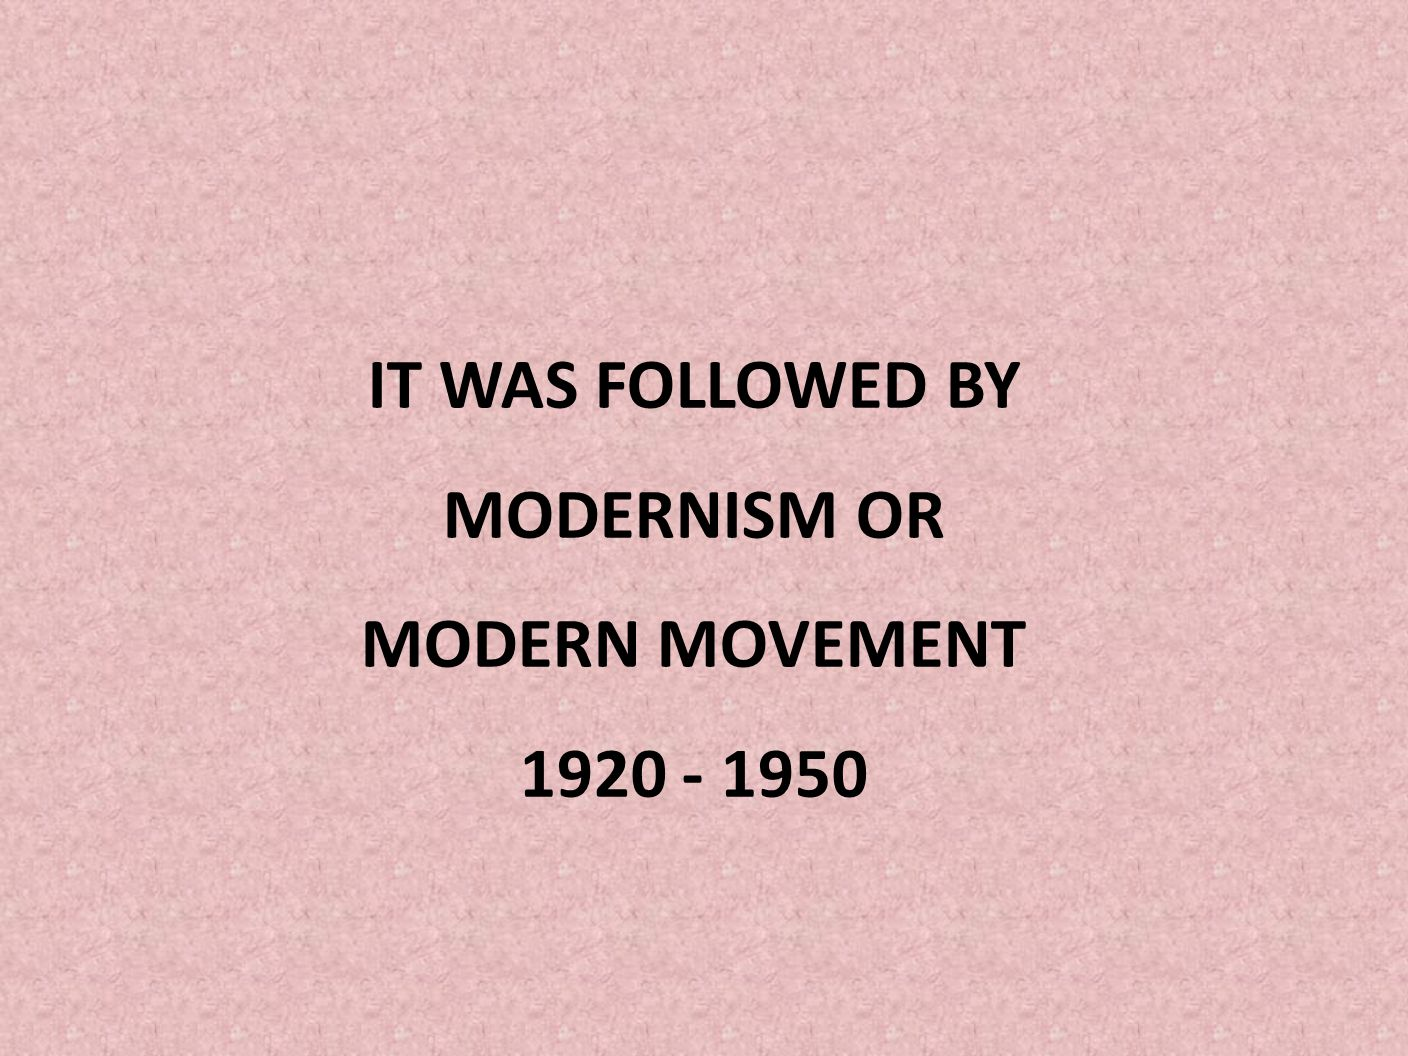 IT WAS FOLLOWED BY MODERNISM OR MODERN MOVEMENT 1920 - 1950